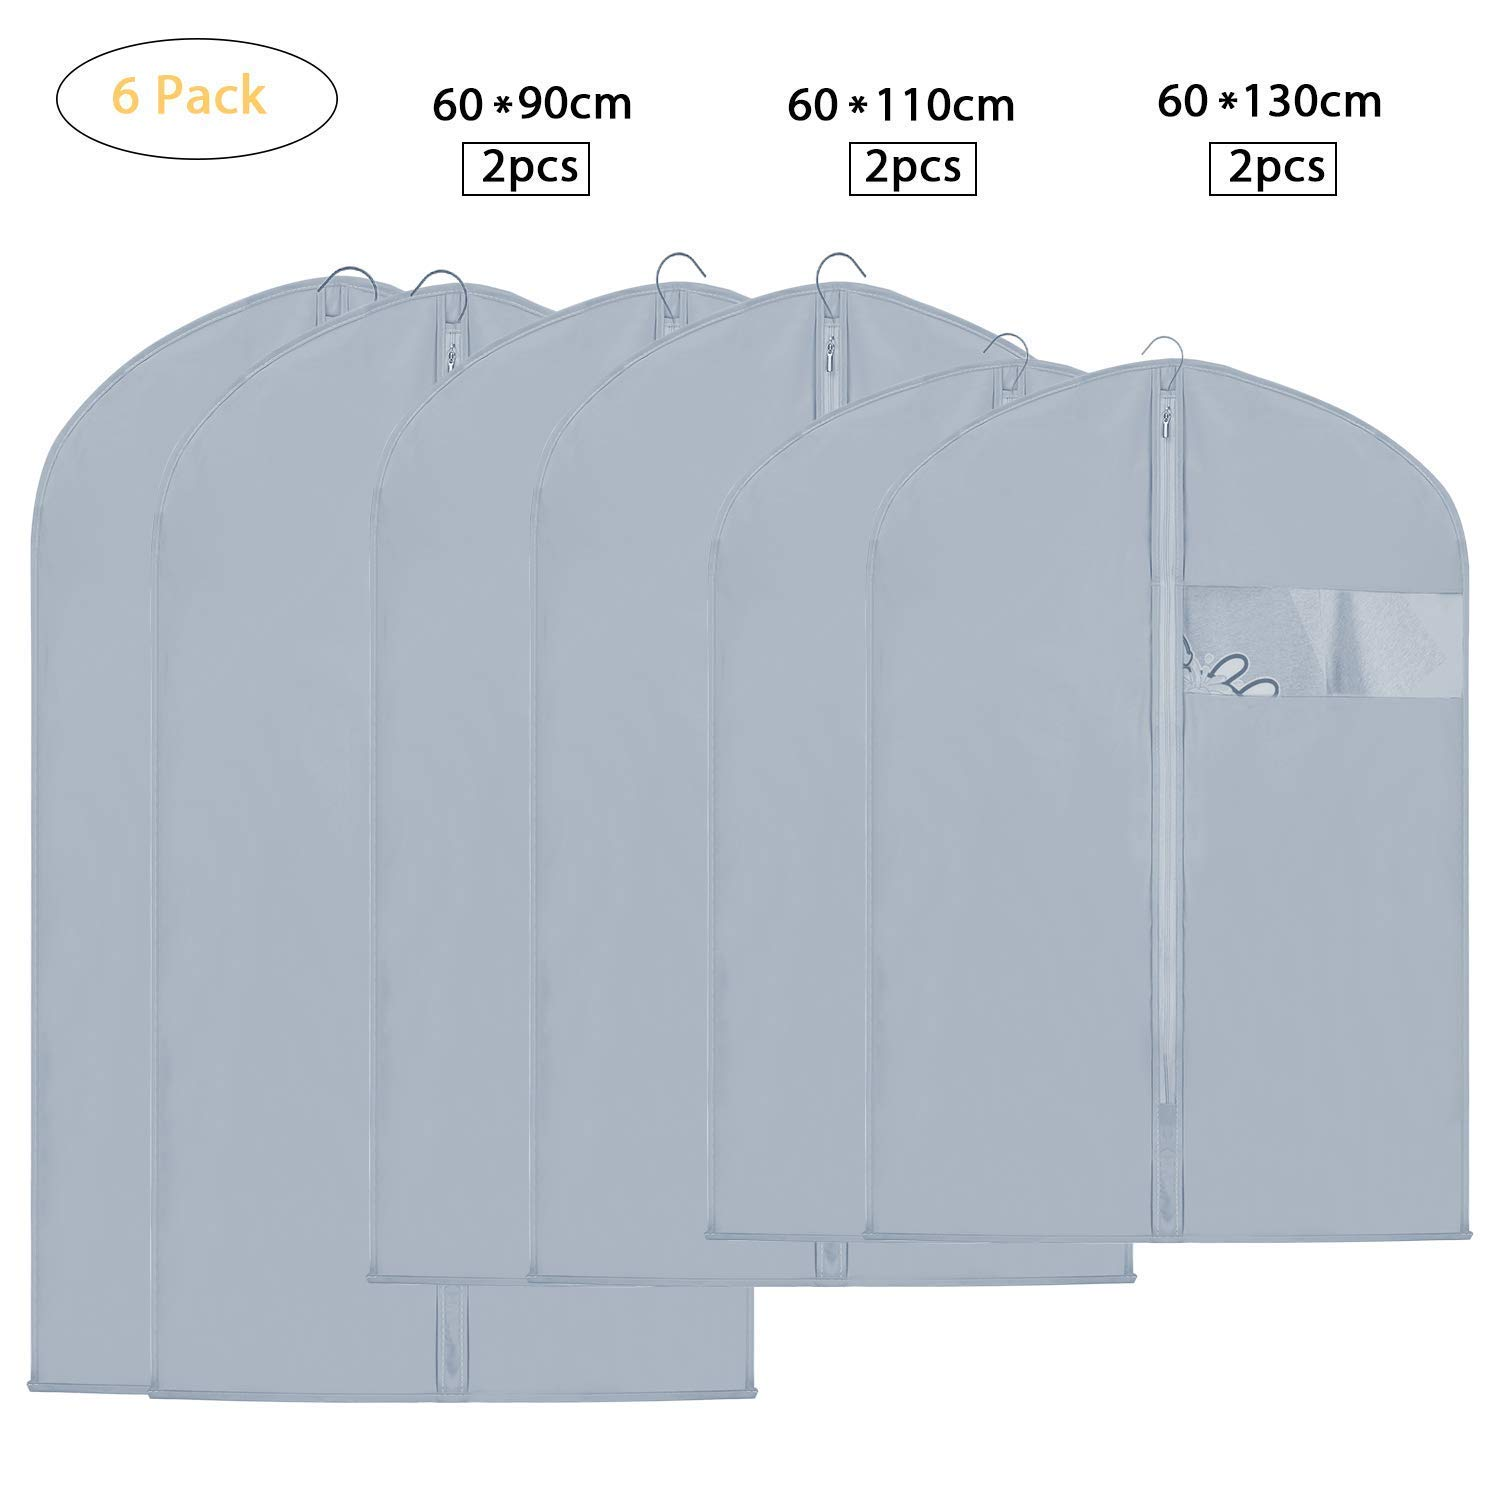 EKKONG Grey Garment Bags for Breathable Storage of Suits or Dresses—Includes Zipper & Transparent Window (Pack of 6)